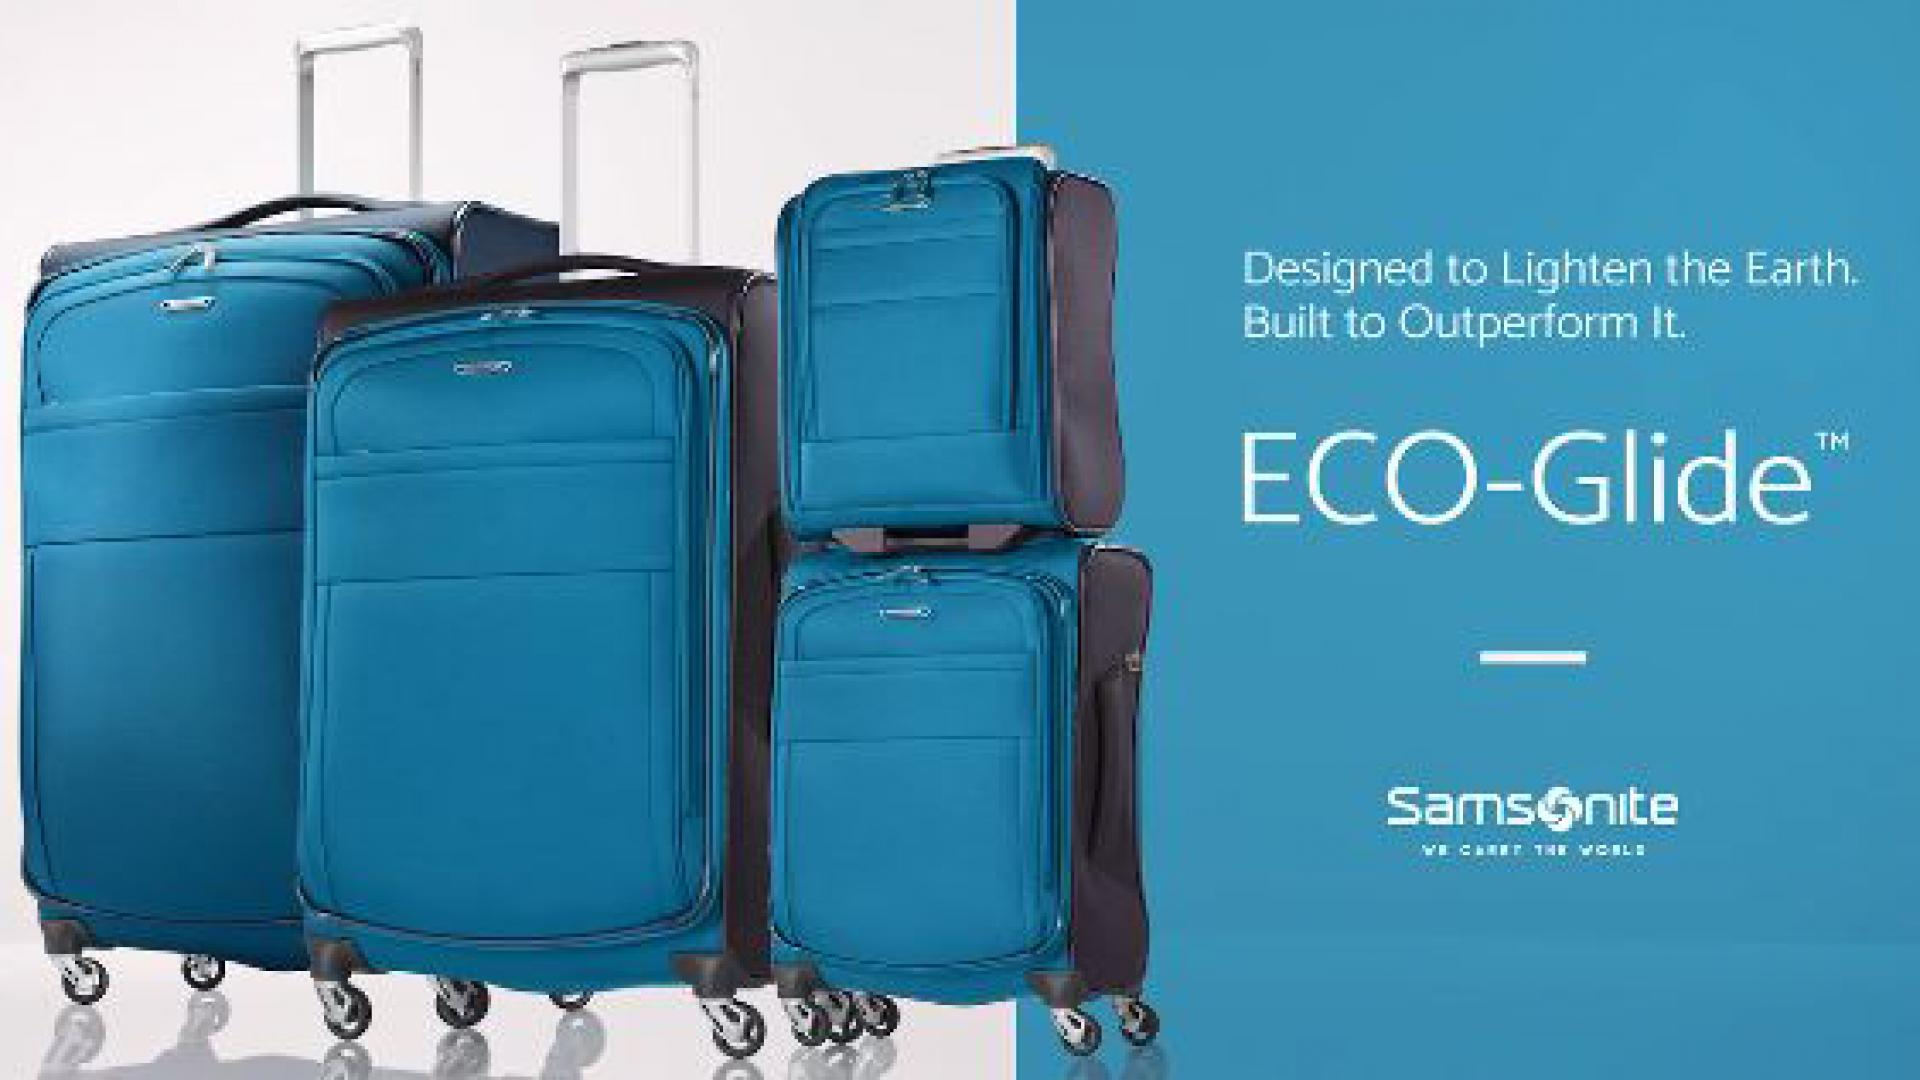 Samsonite EcoGlide Luggage Collection